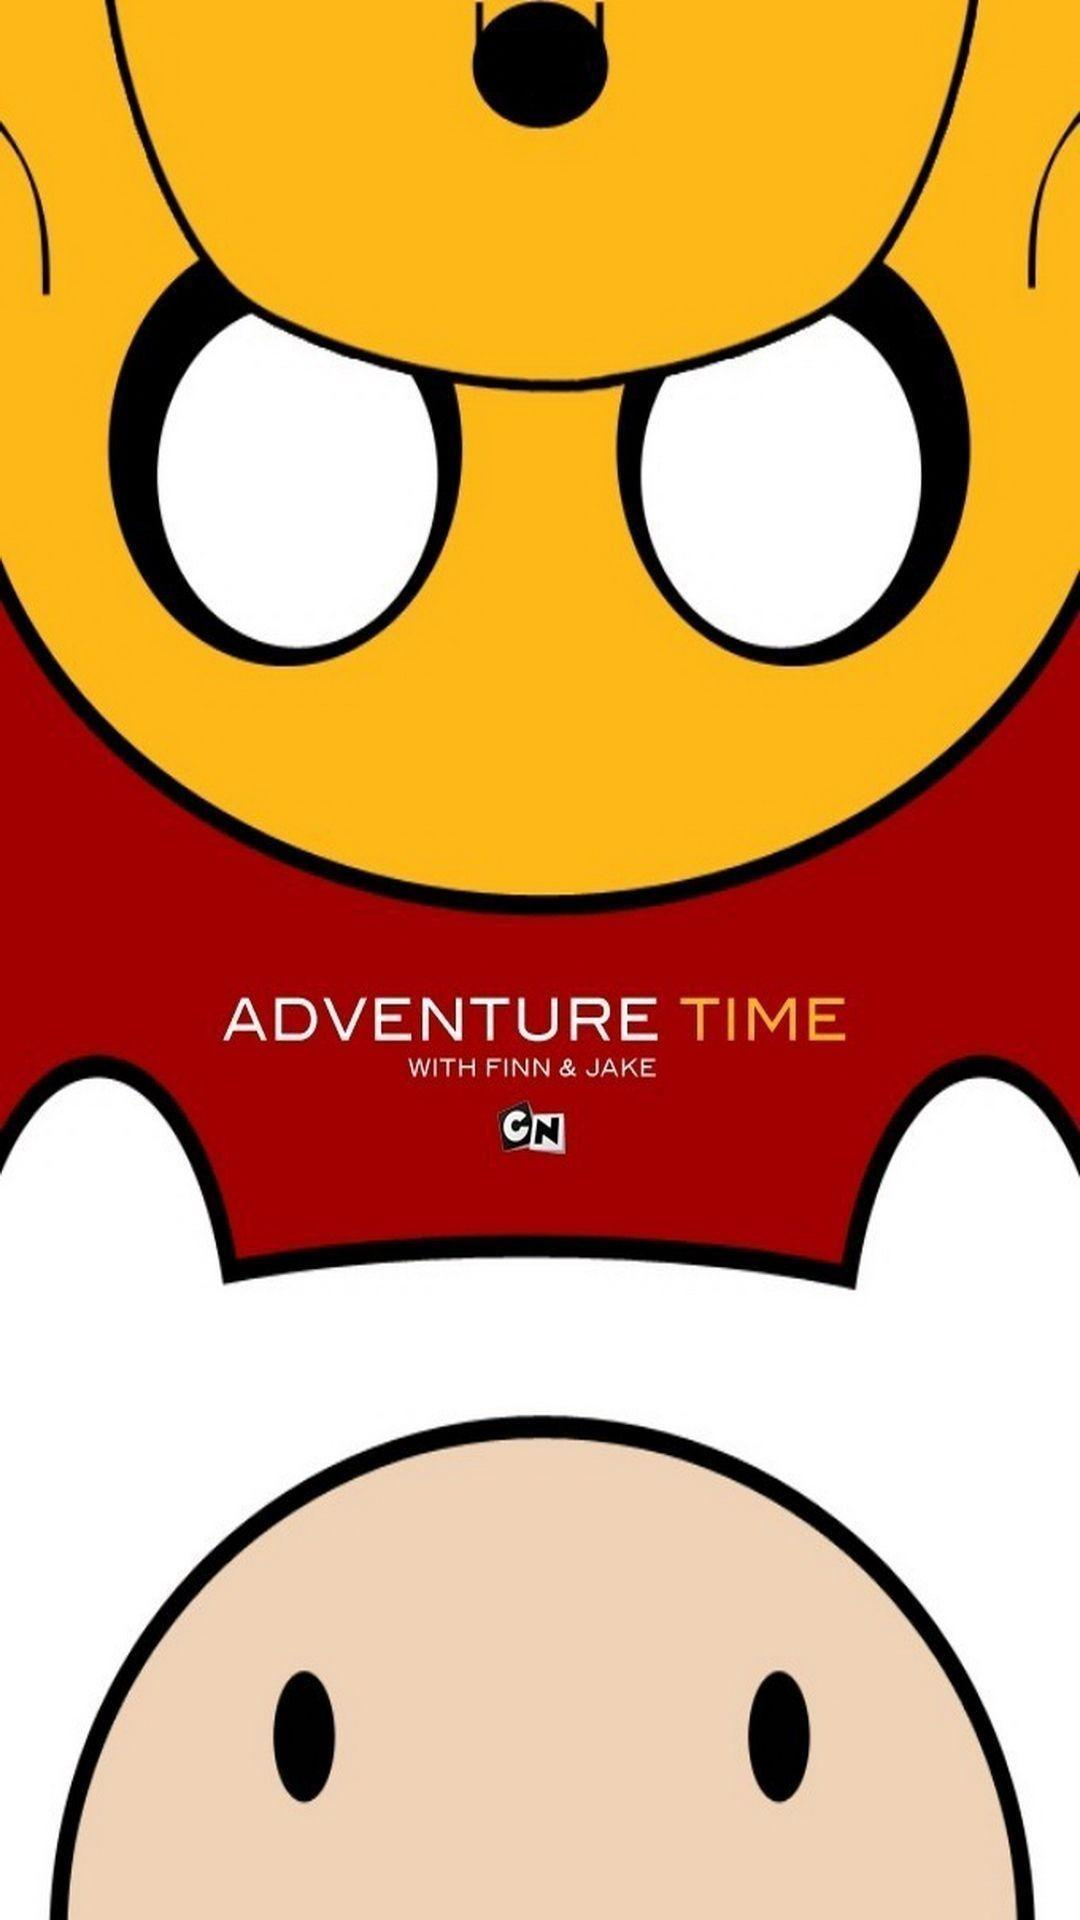 adventure time iphone hd wallpapers